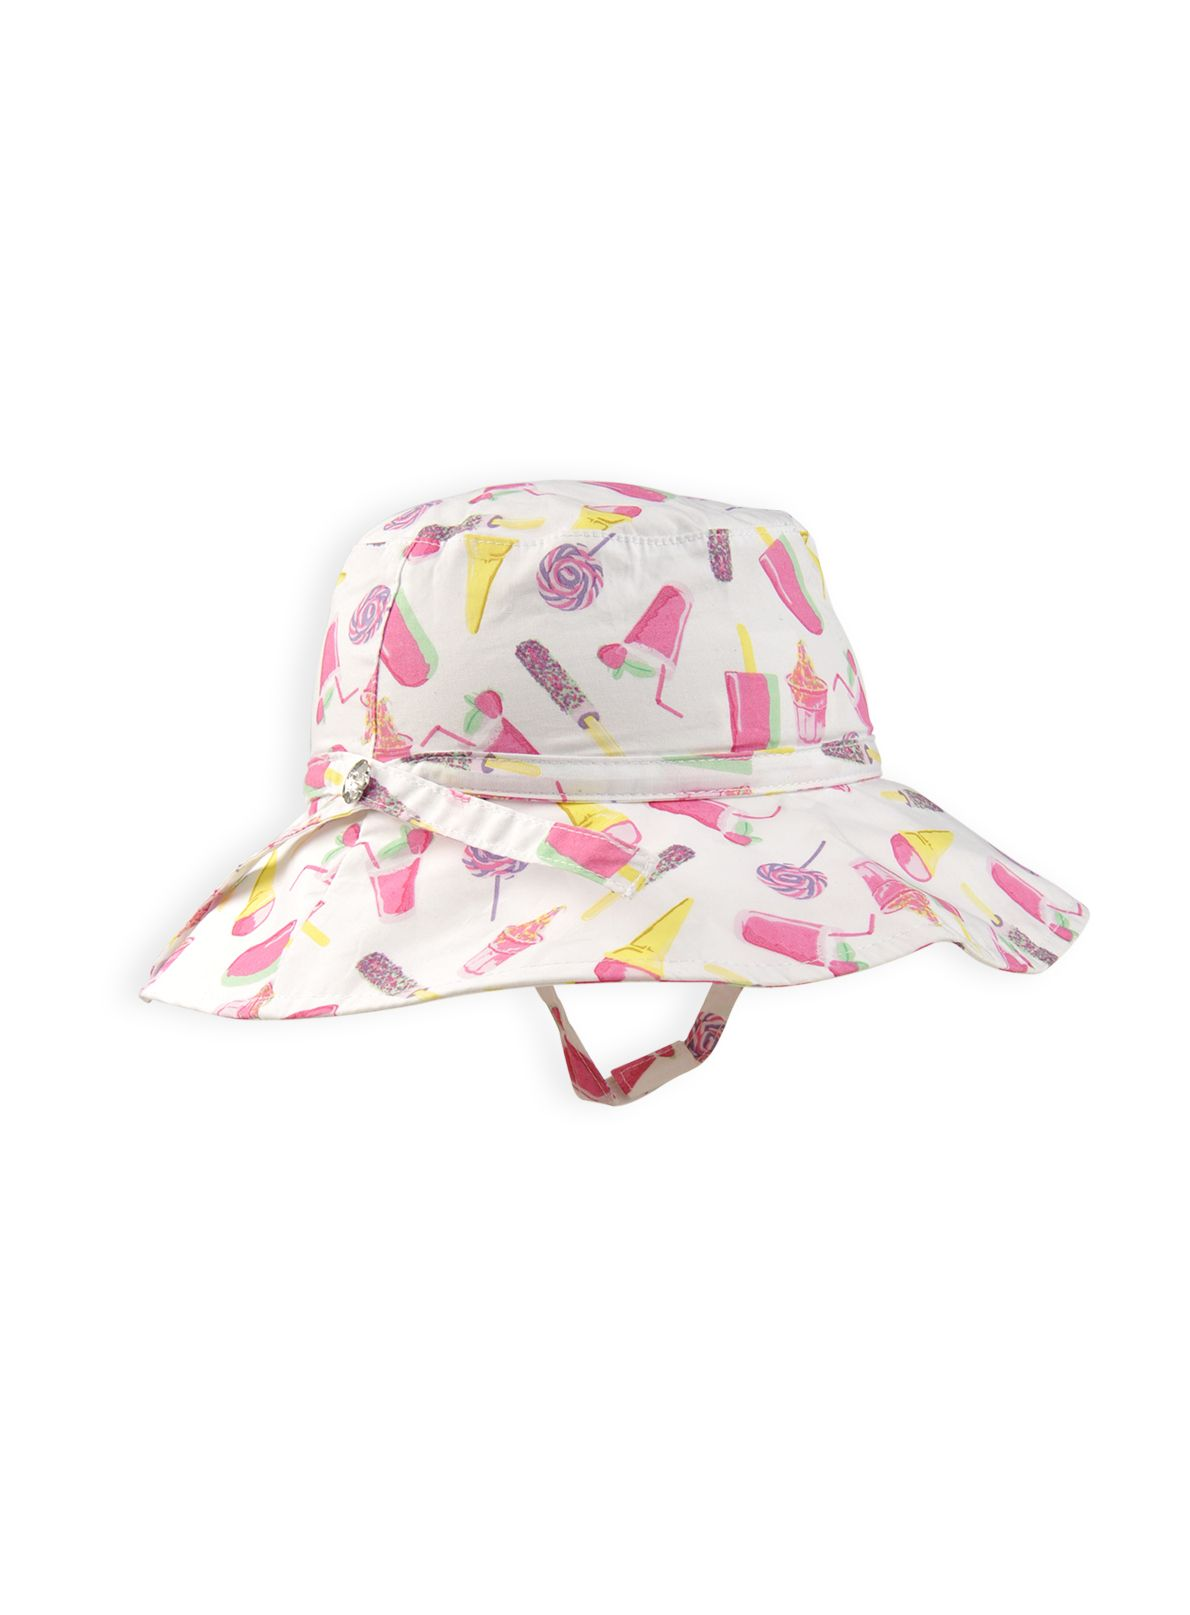 Girls ice cream party sun hat